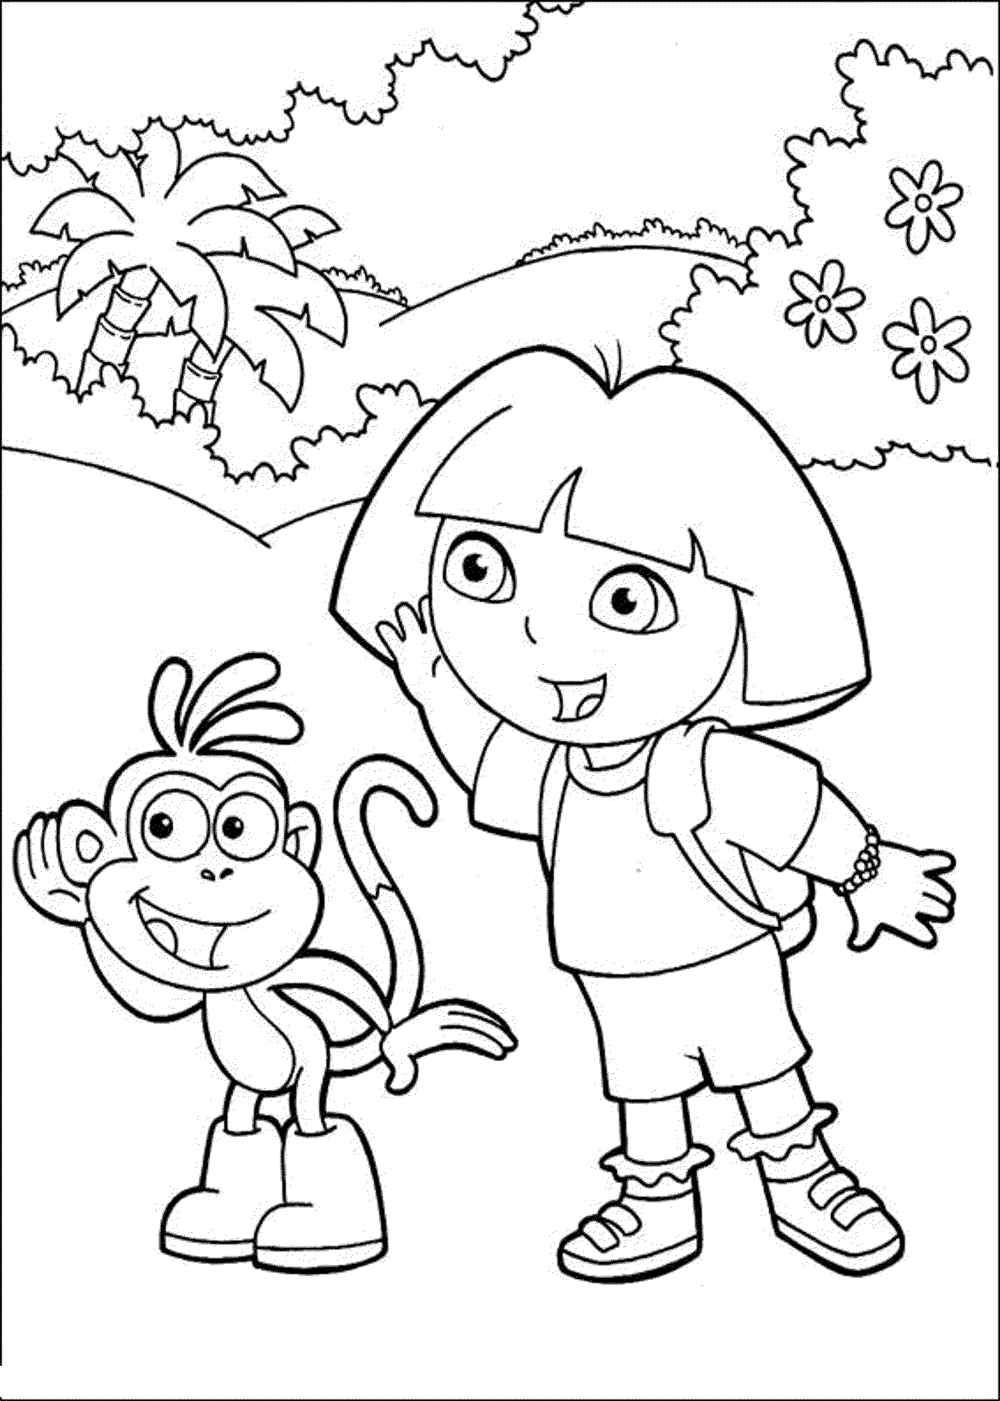 dora colouring pages print download dora coloring pages to learn new things dora colouring pages